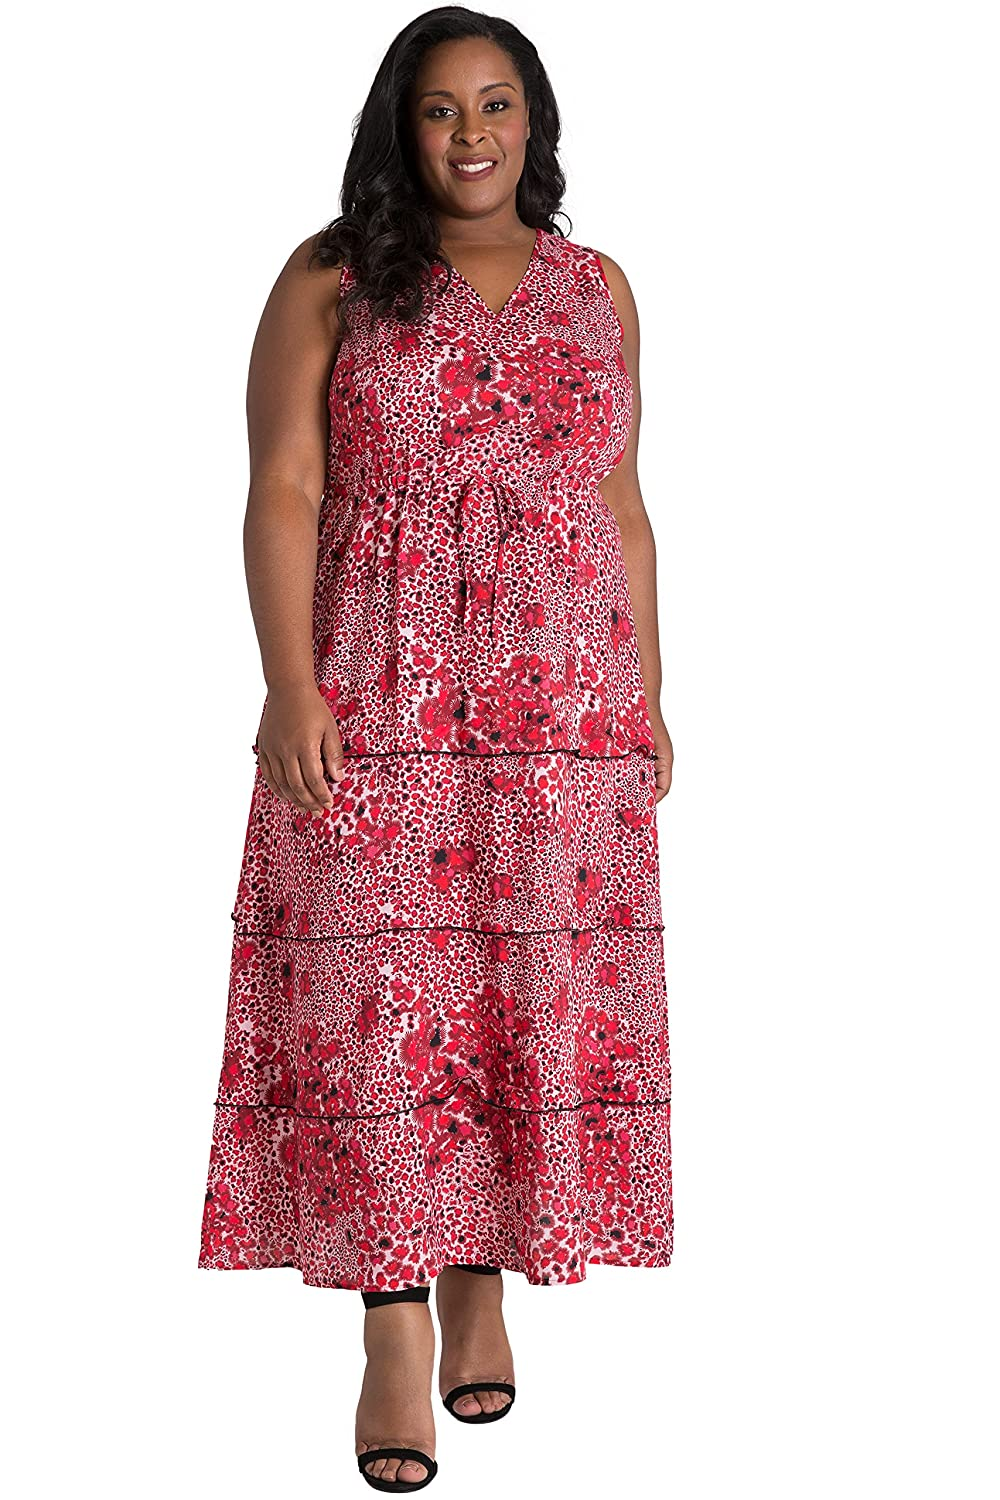 a795c635df6 This v-neck maxi dress features a gorgeous bohemian tiered skirt and  drawstring waist for a flattering silhouette. The dress is a monochromatic  abrstract ...